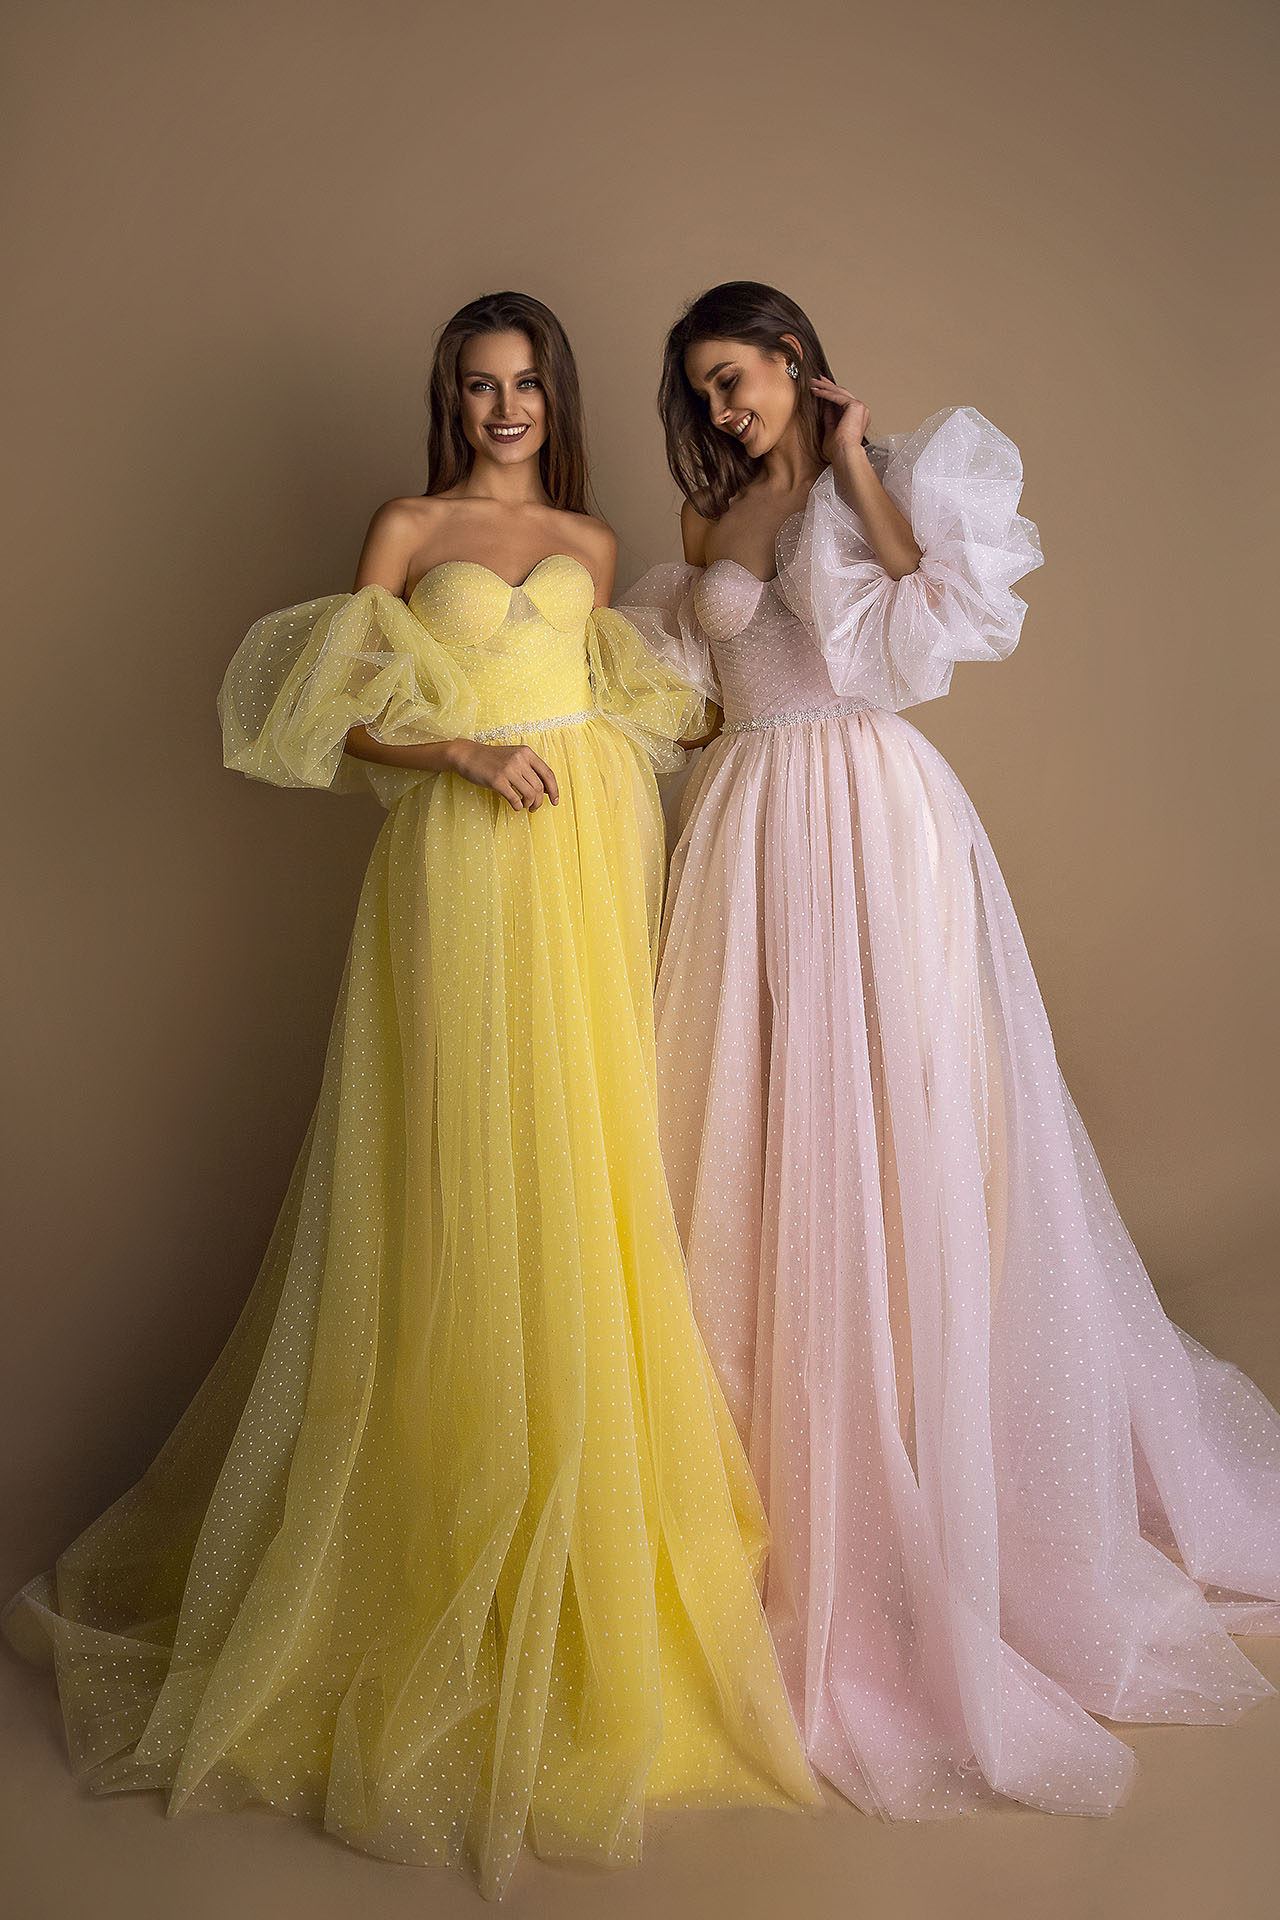 Evening Dresses 1605 Silhouette  A Line  Color  Pink  Yellow  Neckline  Sweetheart  Sleeves  Off the Shoulder Sleeves  Train  No train